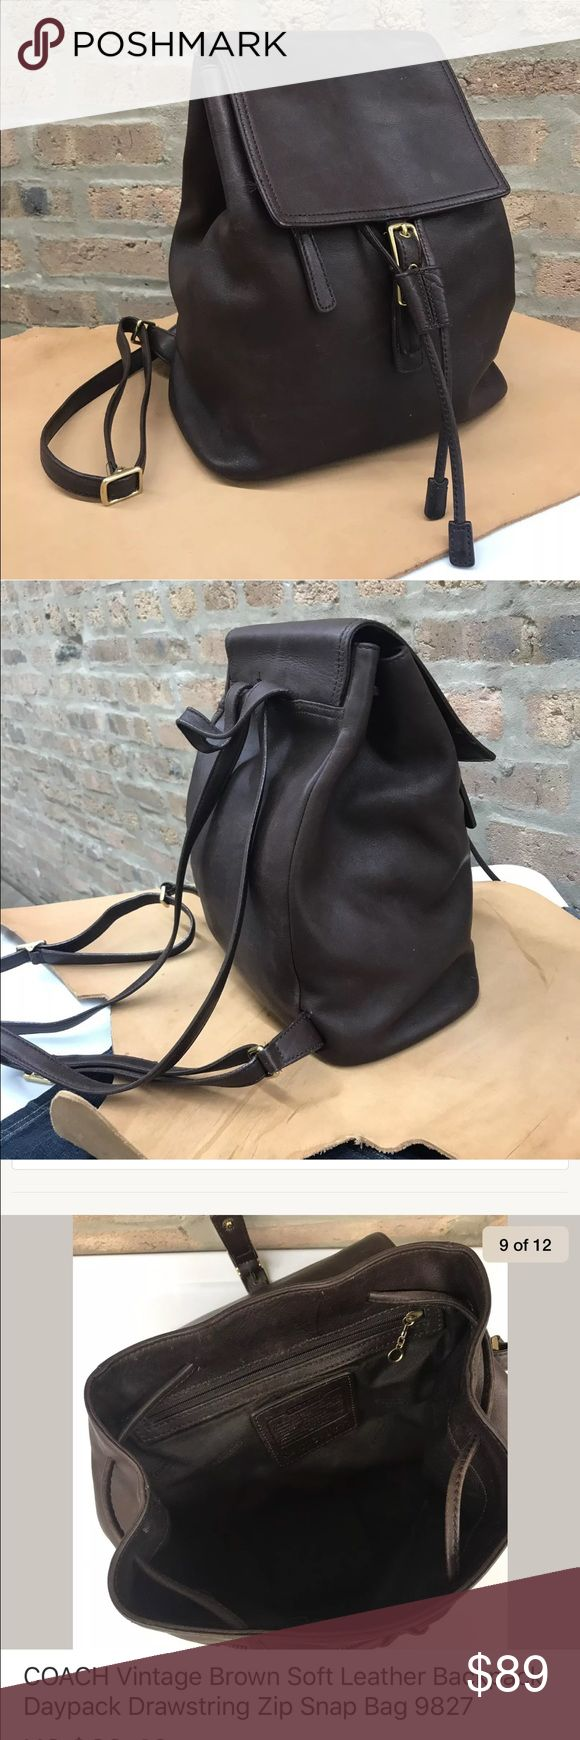 """COACH Vtg Leather Backpack Daypack Drawstring Bag COACH Vtg  Leather Backpack Daypack Drawstring Zip Snap Bag 9827. Wear of leather - more photos ok if interest. Glove Tanned Authentic Lthr. Brass, (Gold-tone) H/ware. Approx. 10"""" x 11"""" x 5. Draw String Closure w/ Magnetic Snap Closure.Magnetic Snap Tab Flap ClosureTop. Int. #9827 Authentic COACH lthr label. Int. Dk Br Fabric Lining. 1 zip pocket, 2 slip pkts. 1 Ext  Front Zip Pkt under flap. 1 Int Front Zip Pkt. 1 Int. Split Double Pkt (seam…"""